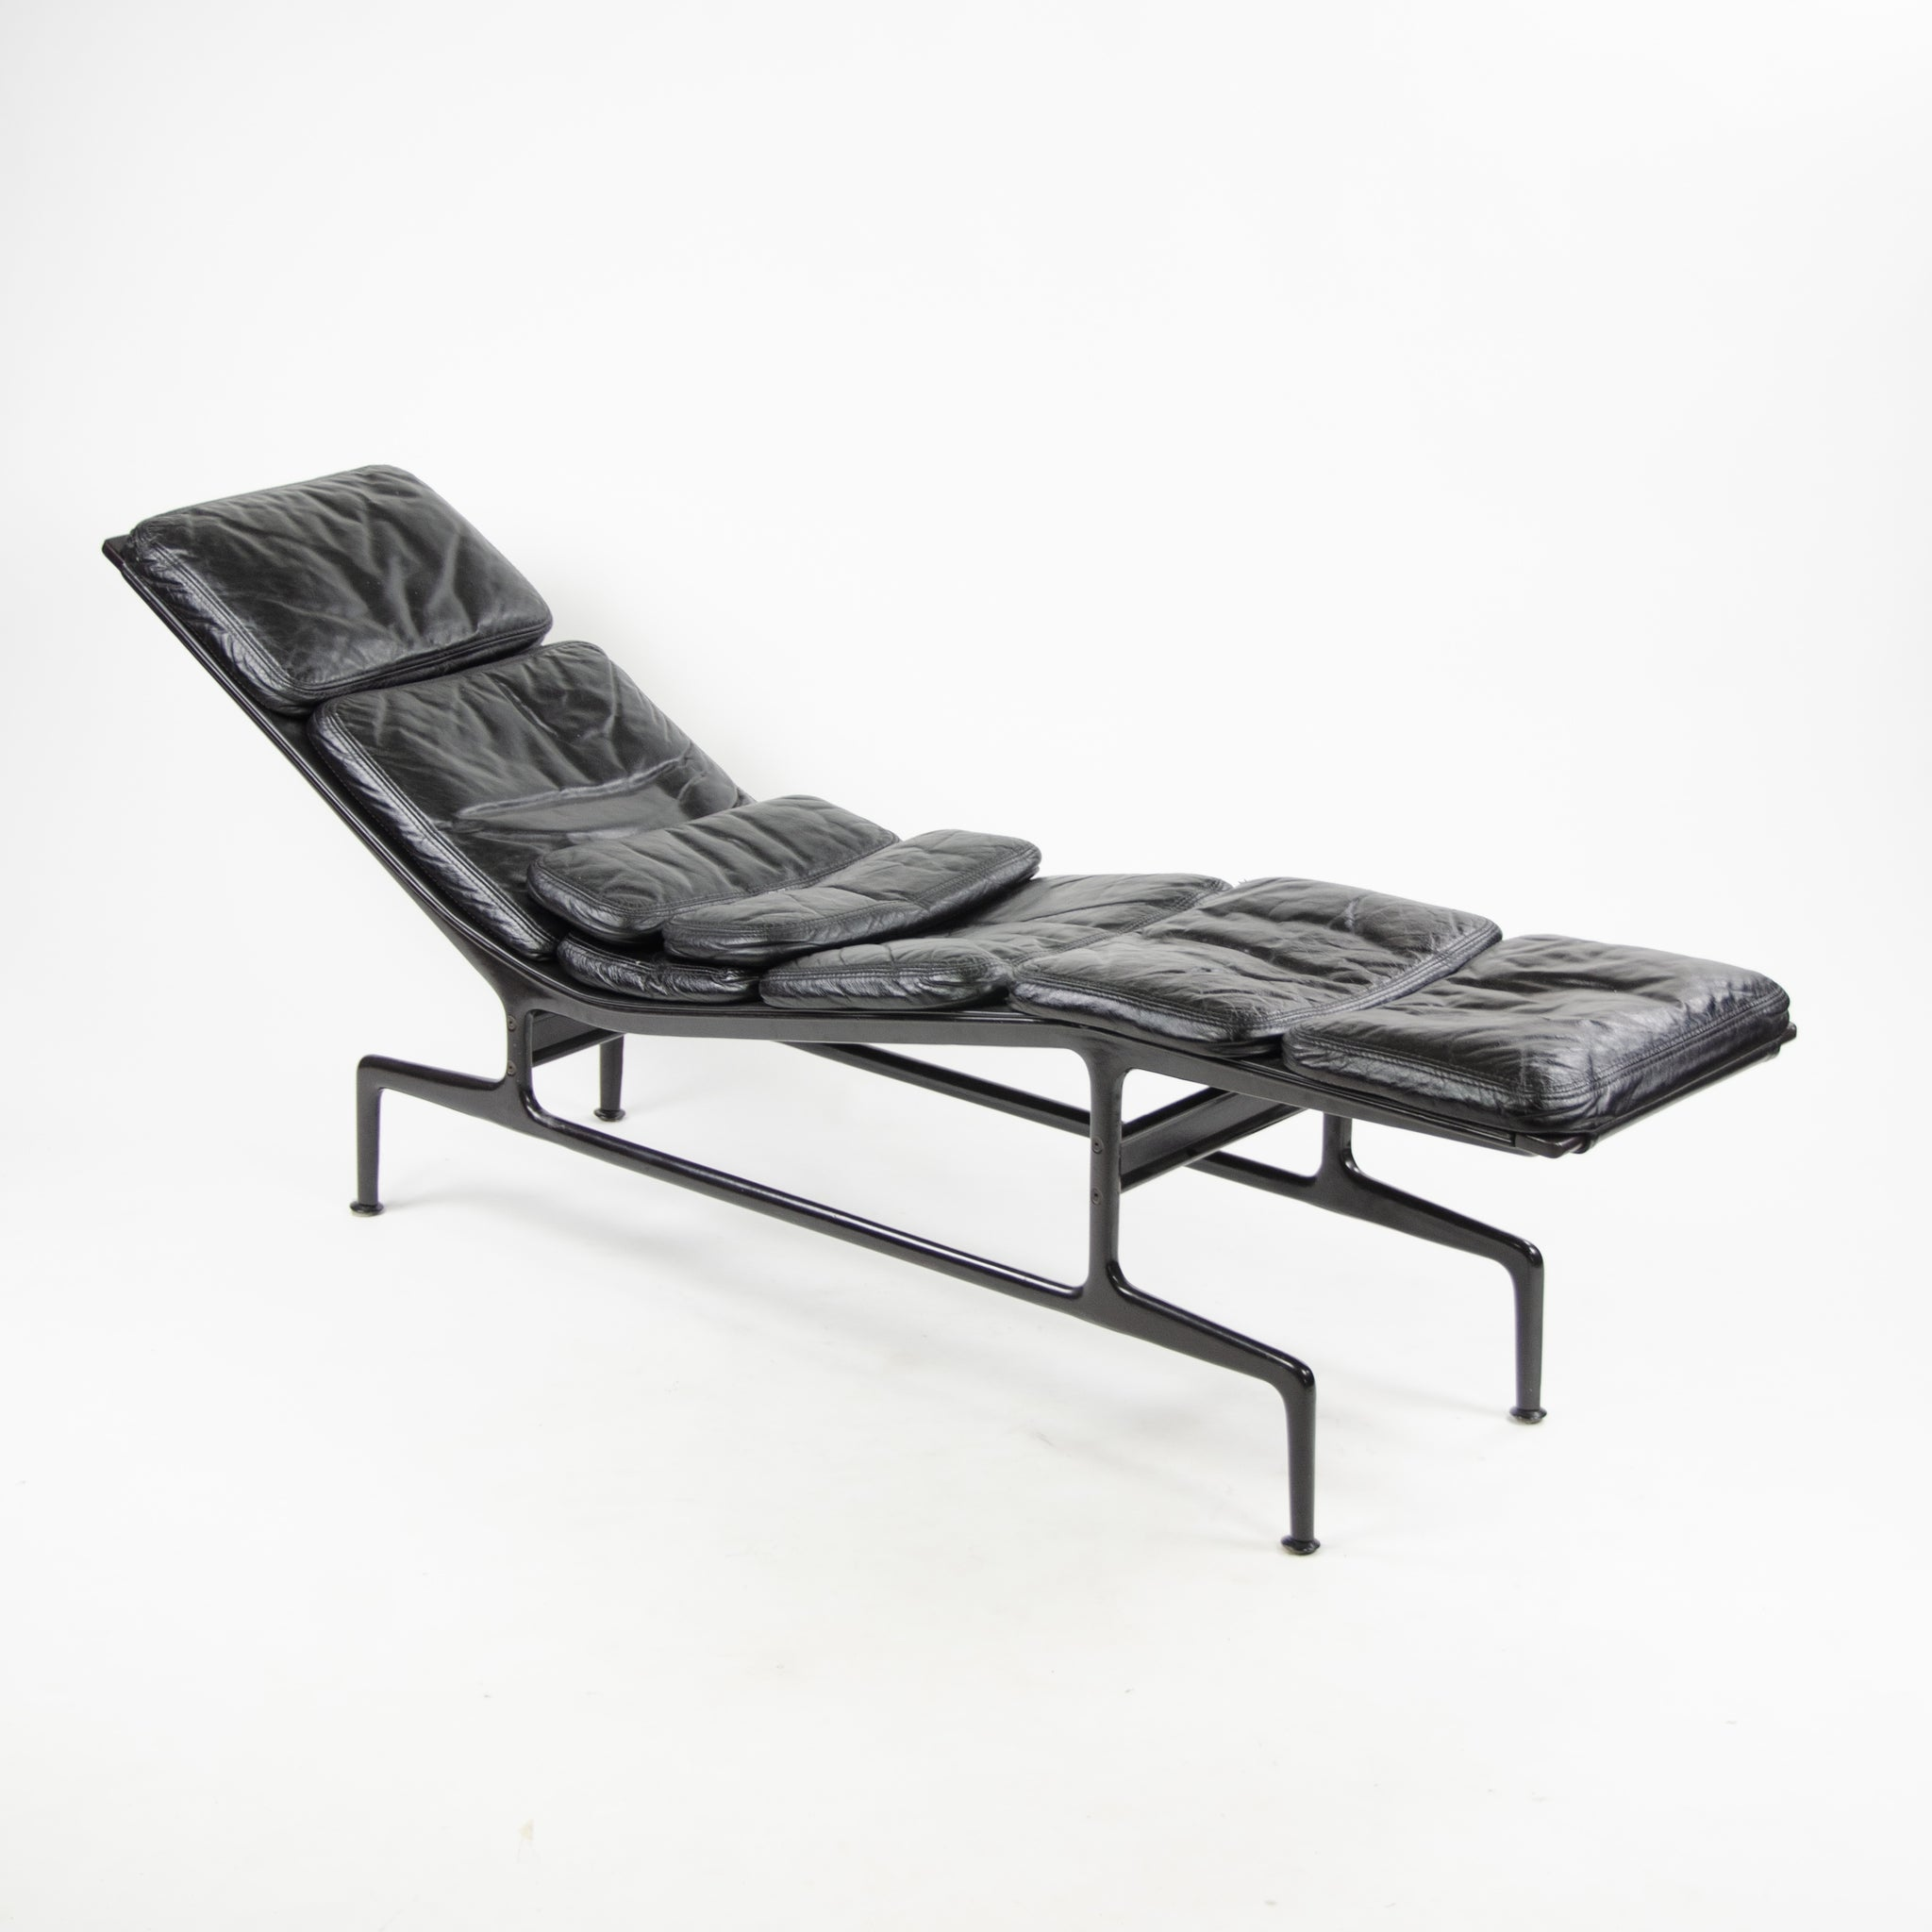 1970's Eames Herman Miller Billy Wilder Black and Eggplant Chaise Lounge Chair